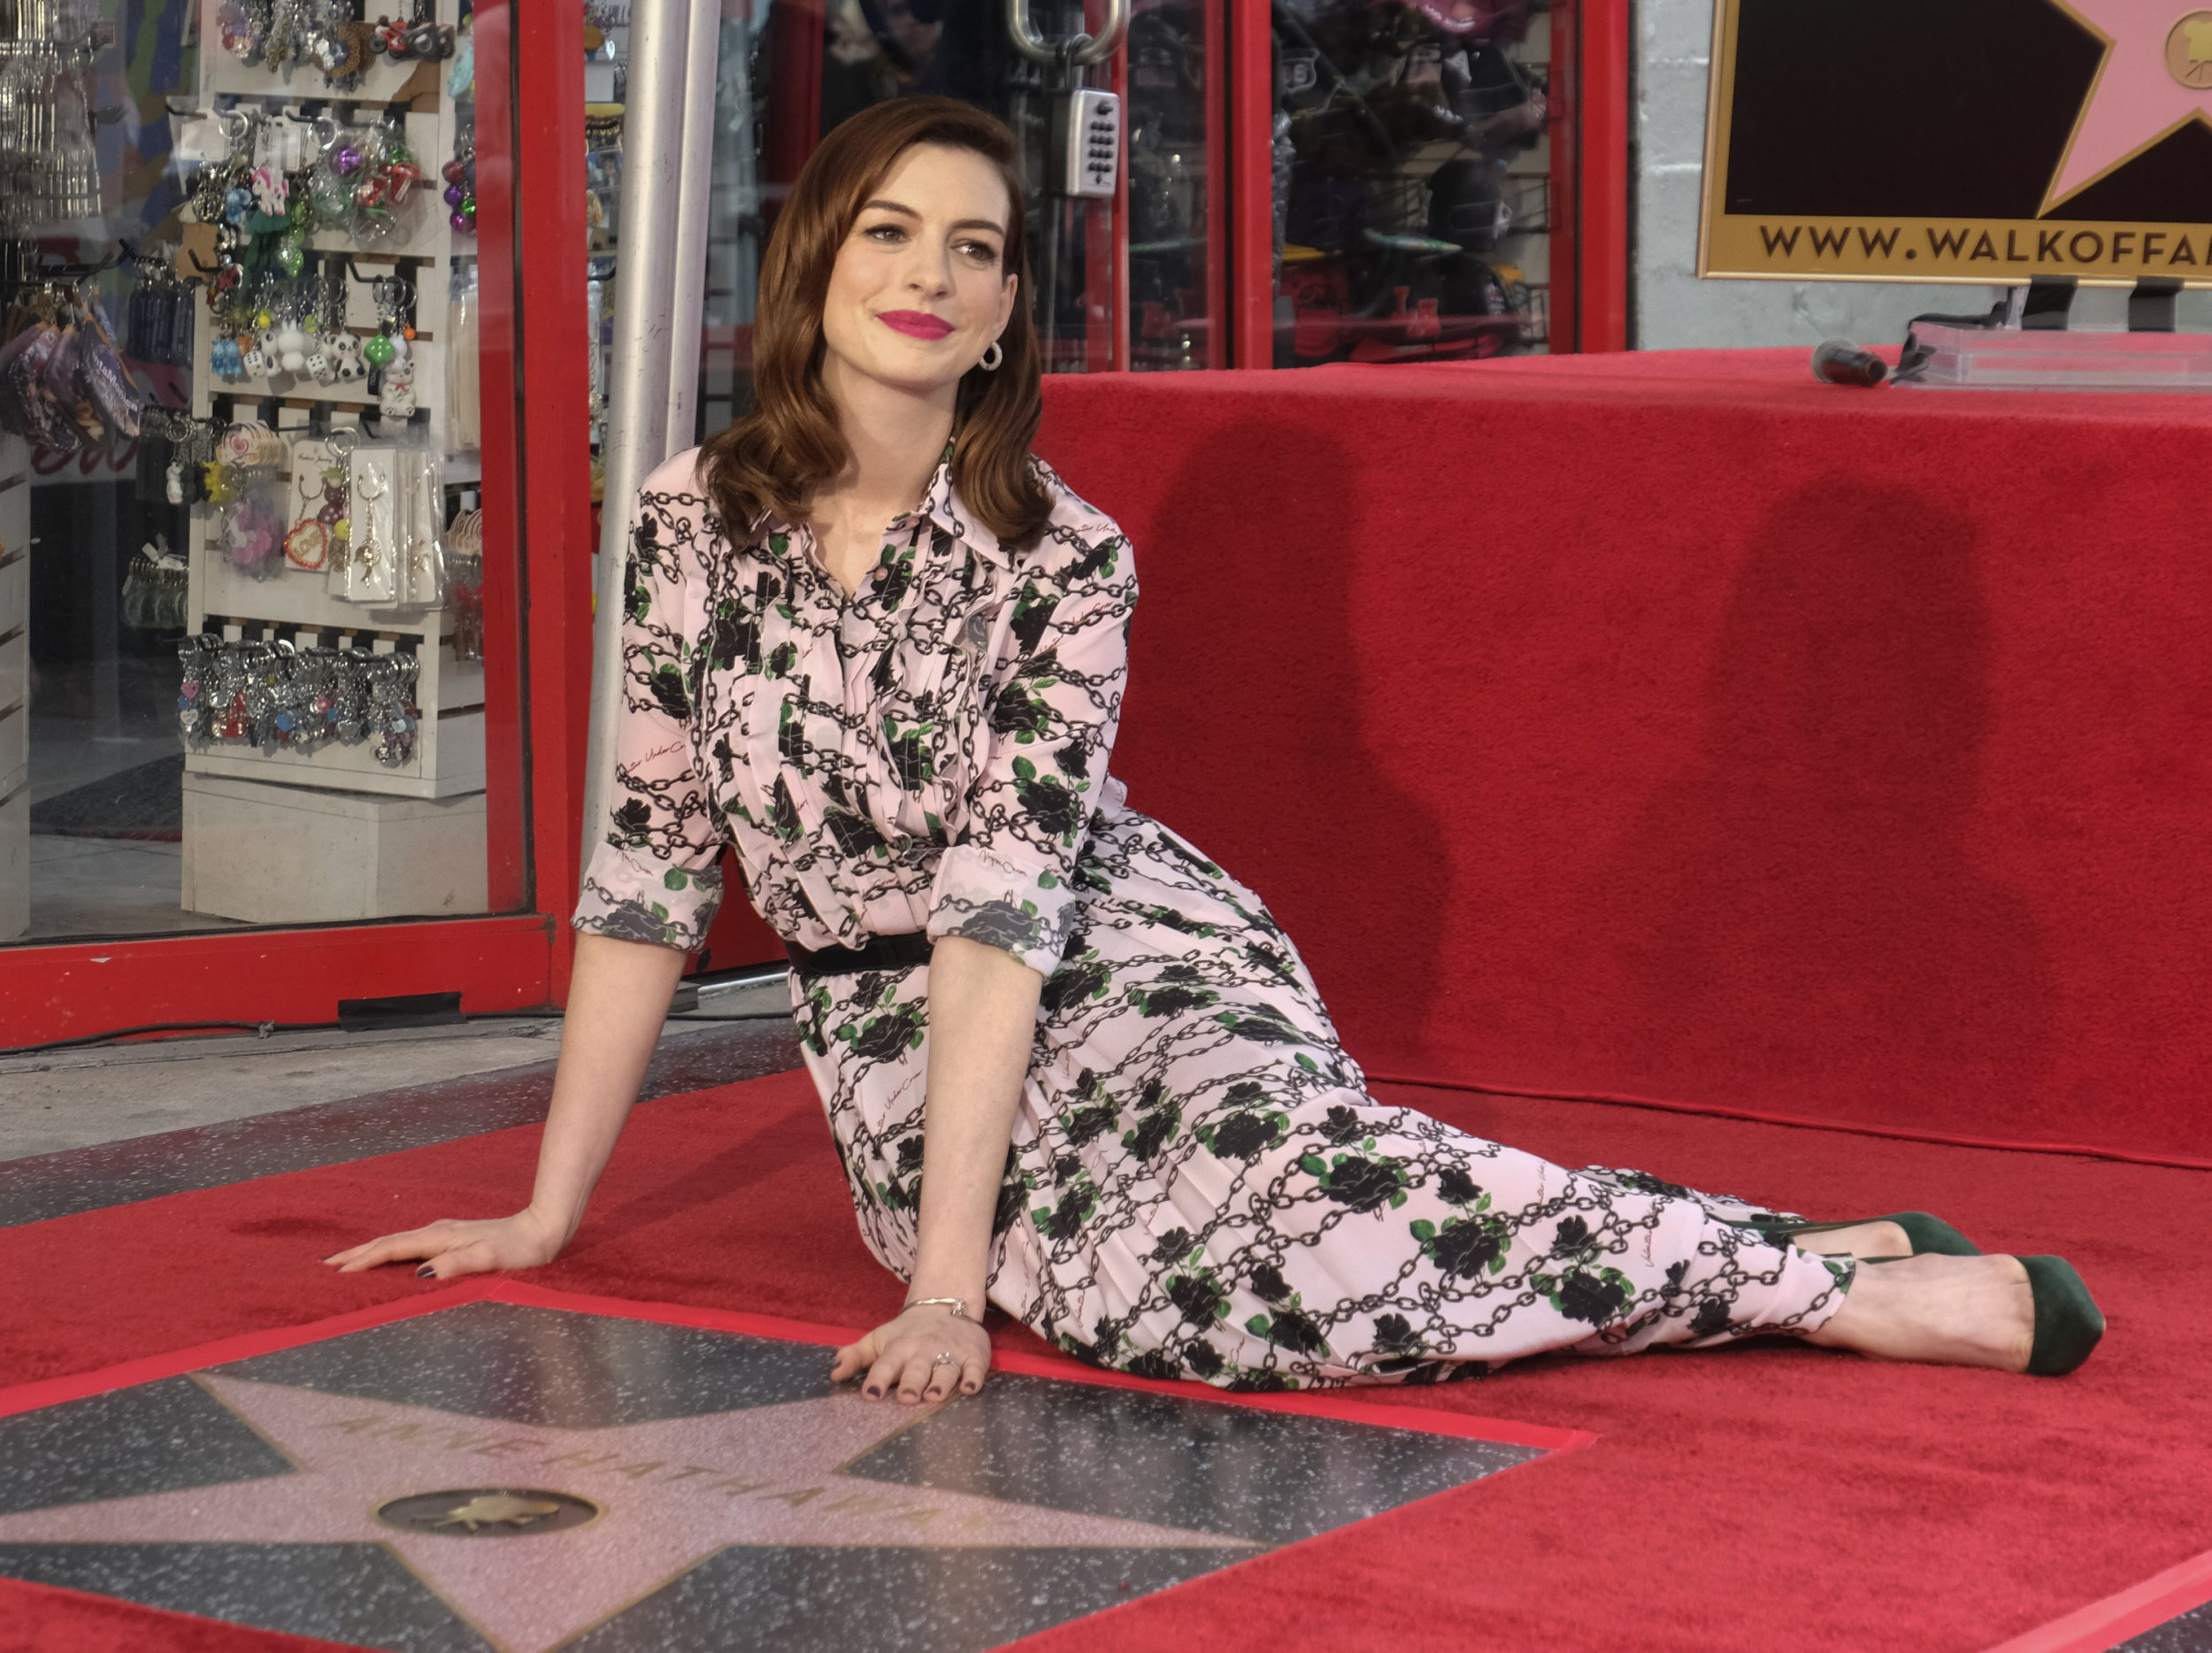 Anne Hathaway during her star rite on a Hollywood Walk of Fame